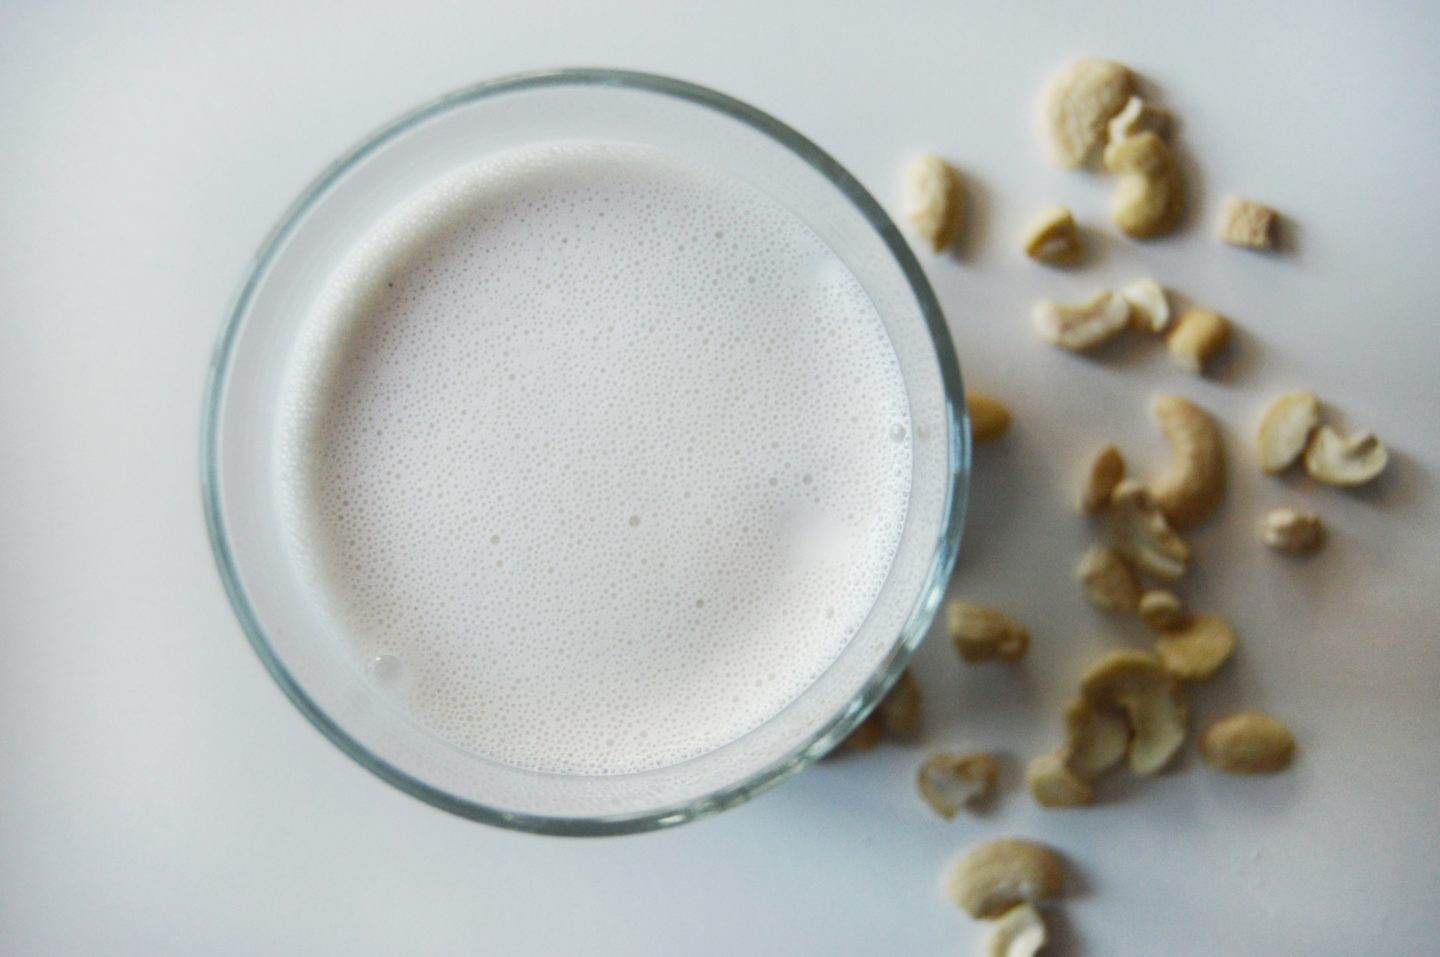 Creamy Cashew Milk Recipe | Simple, easy, and delicious